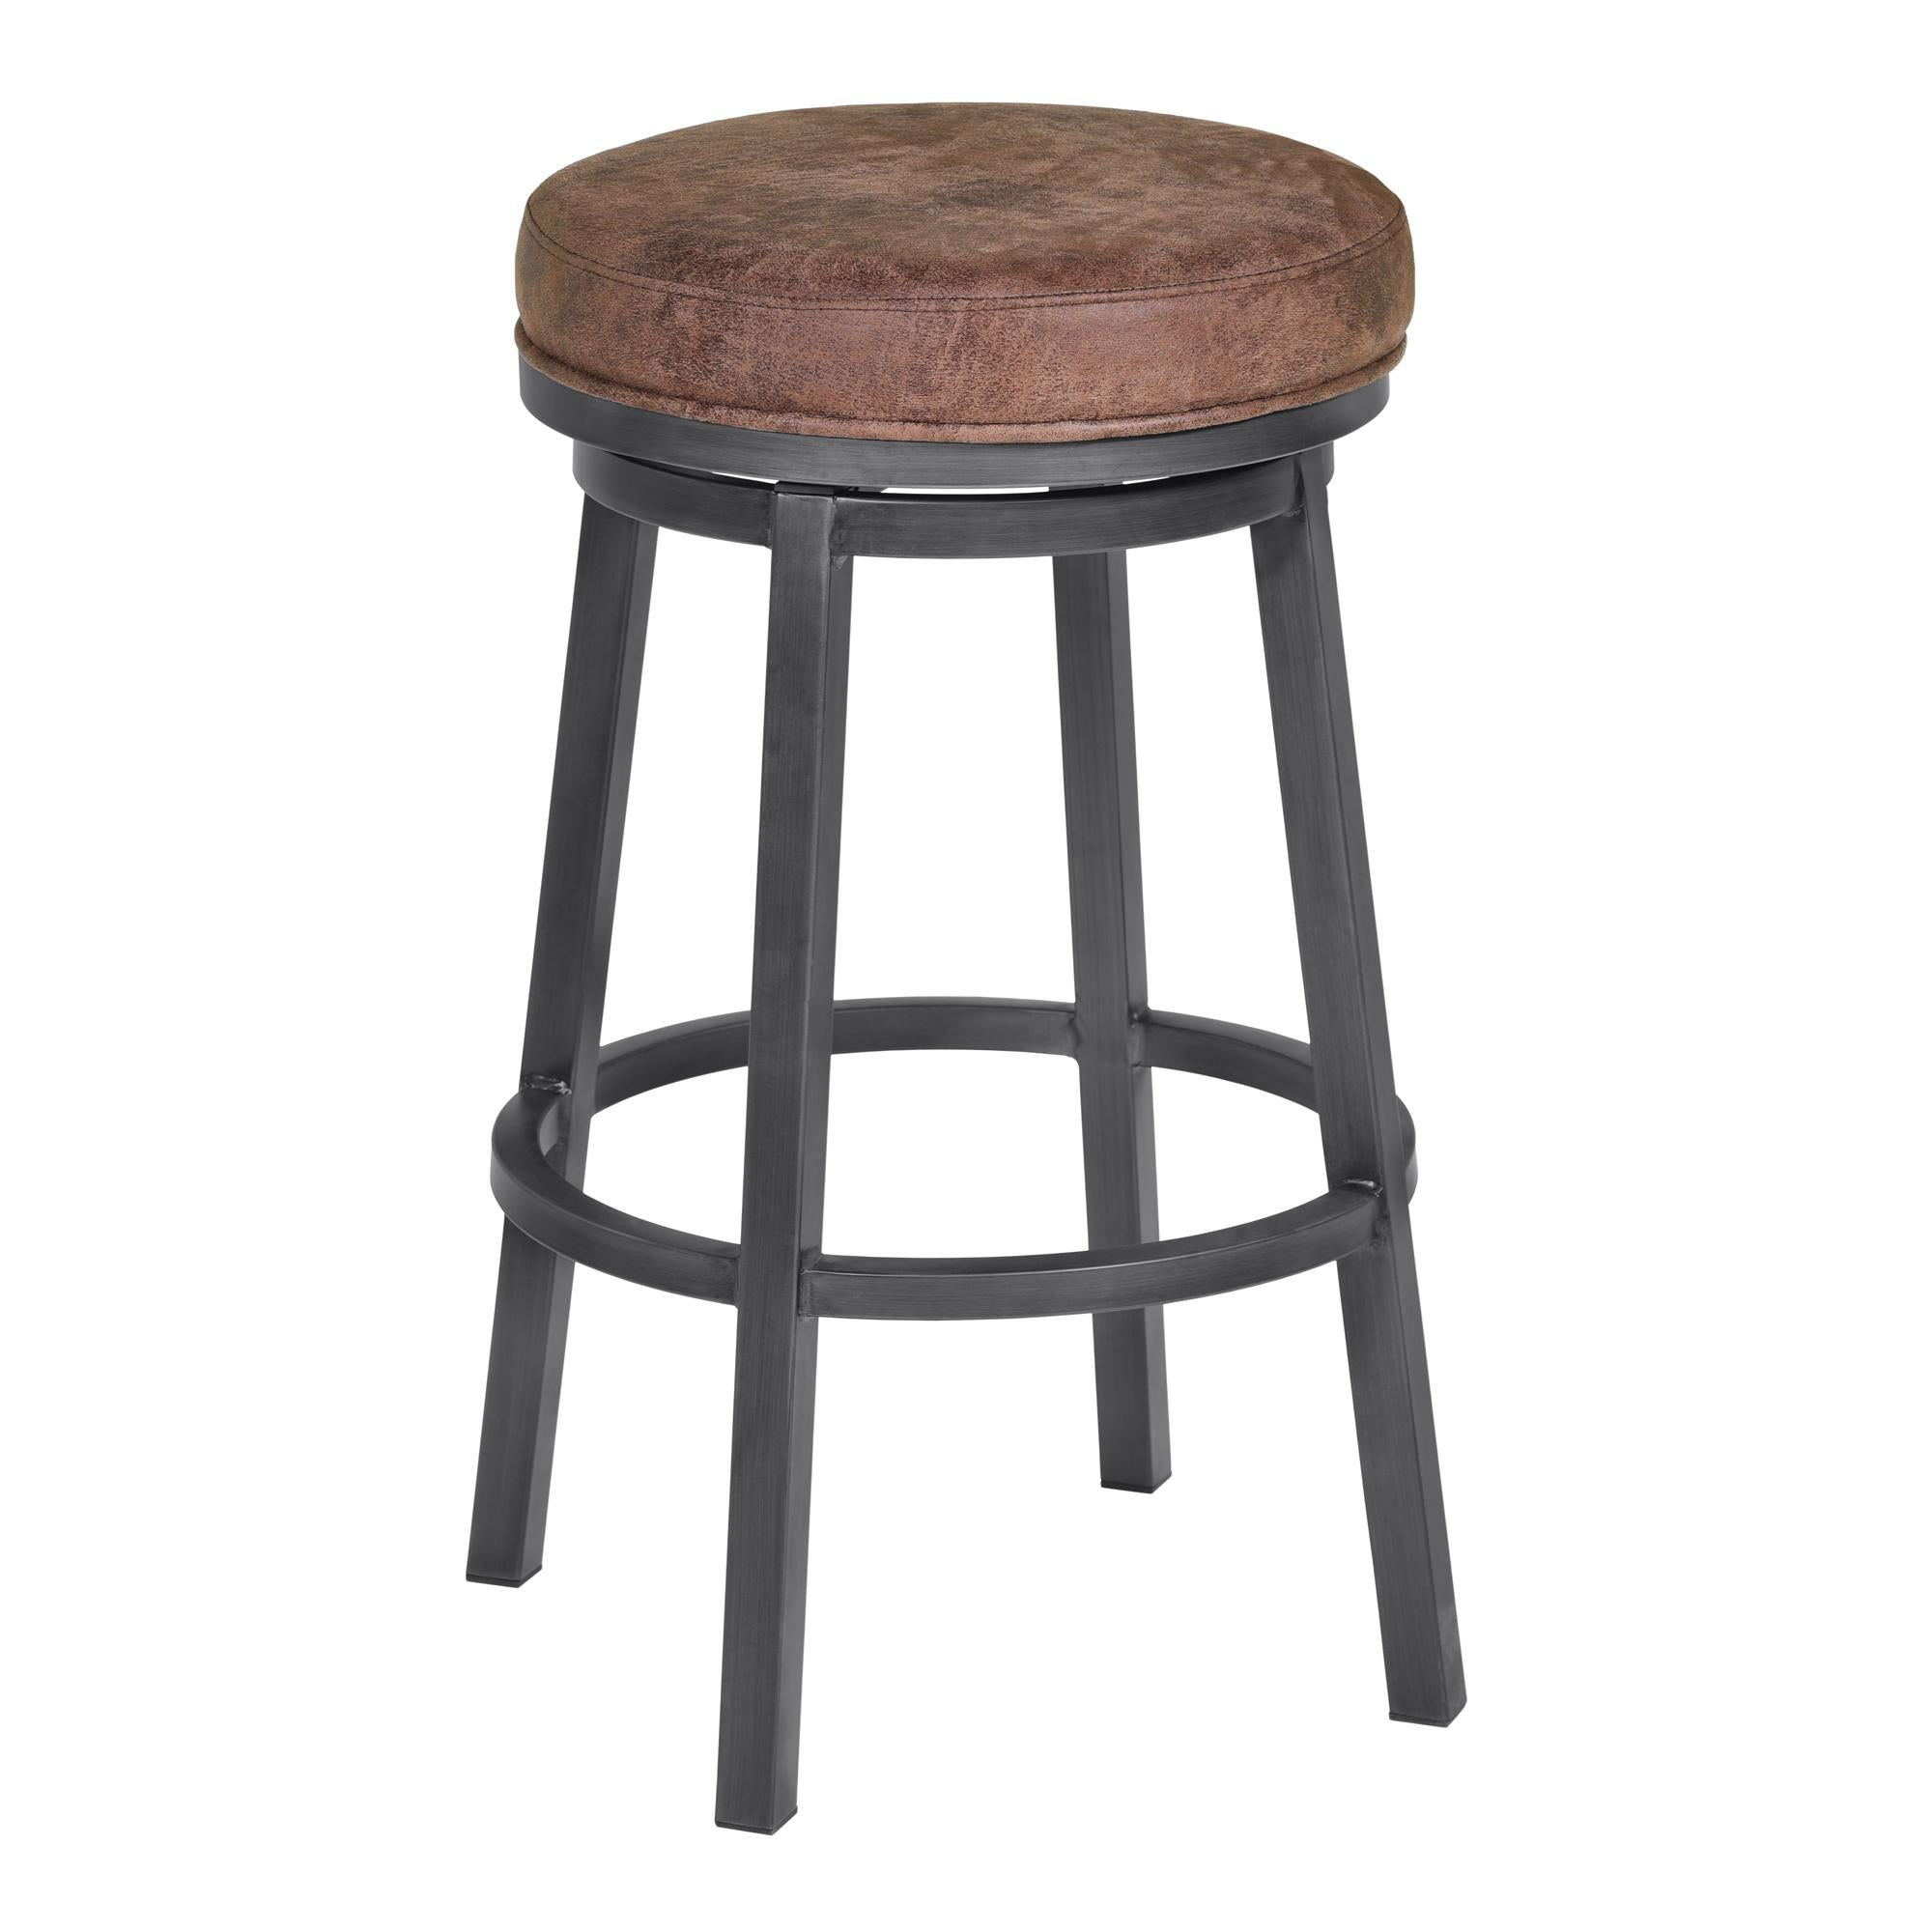 Armen Living Tilden 30' Bar Height Metal Swivel Backless Barstool in Bandero Tobacco Fabric and Mineral Finish